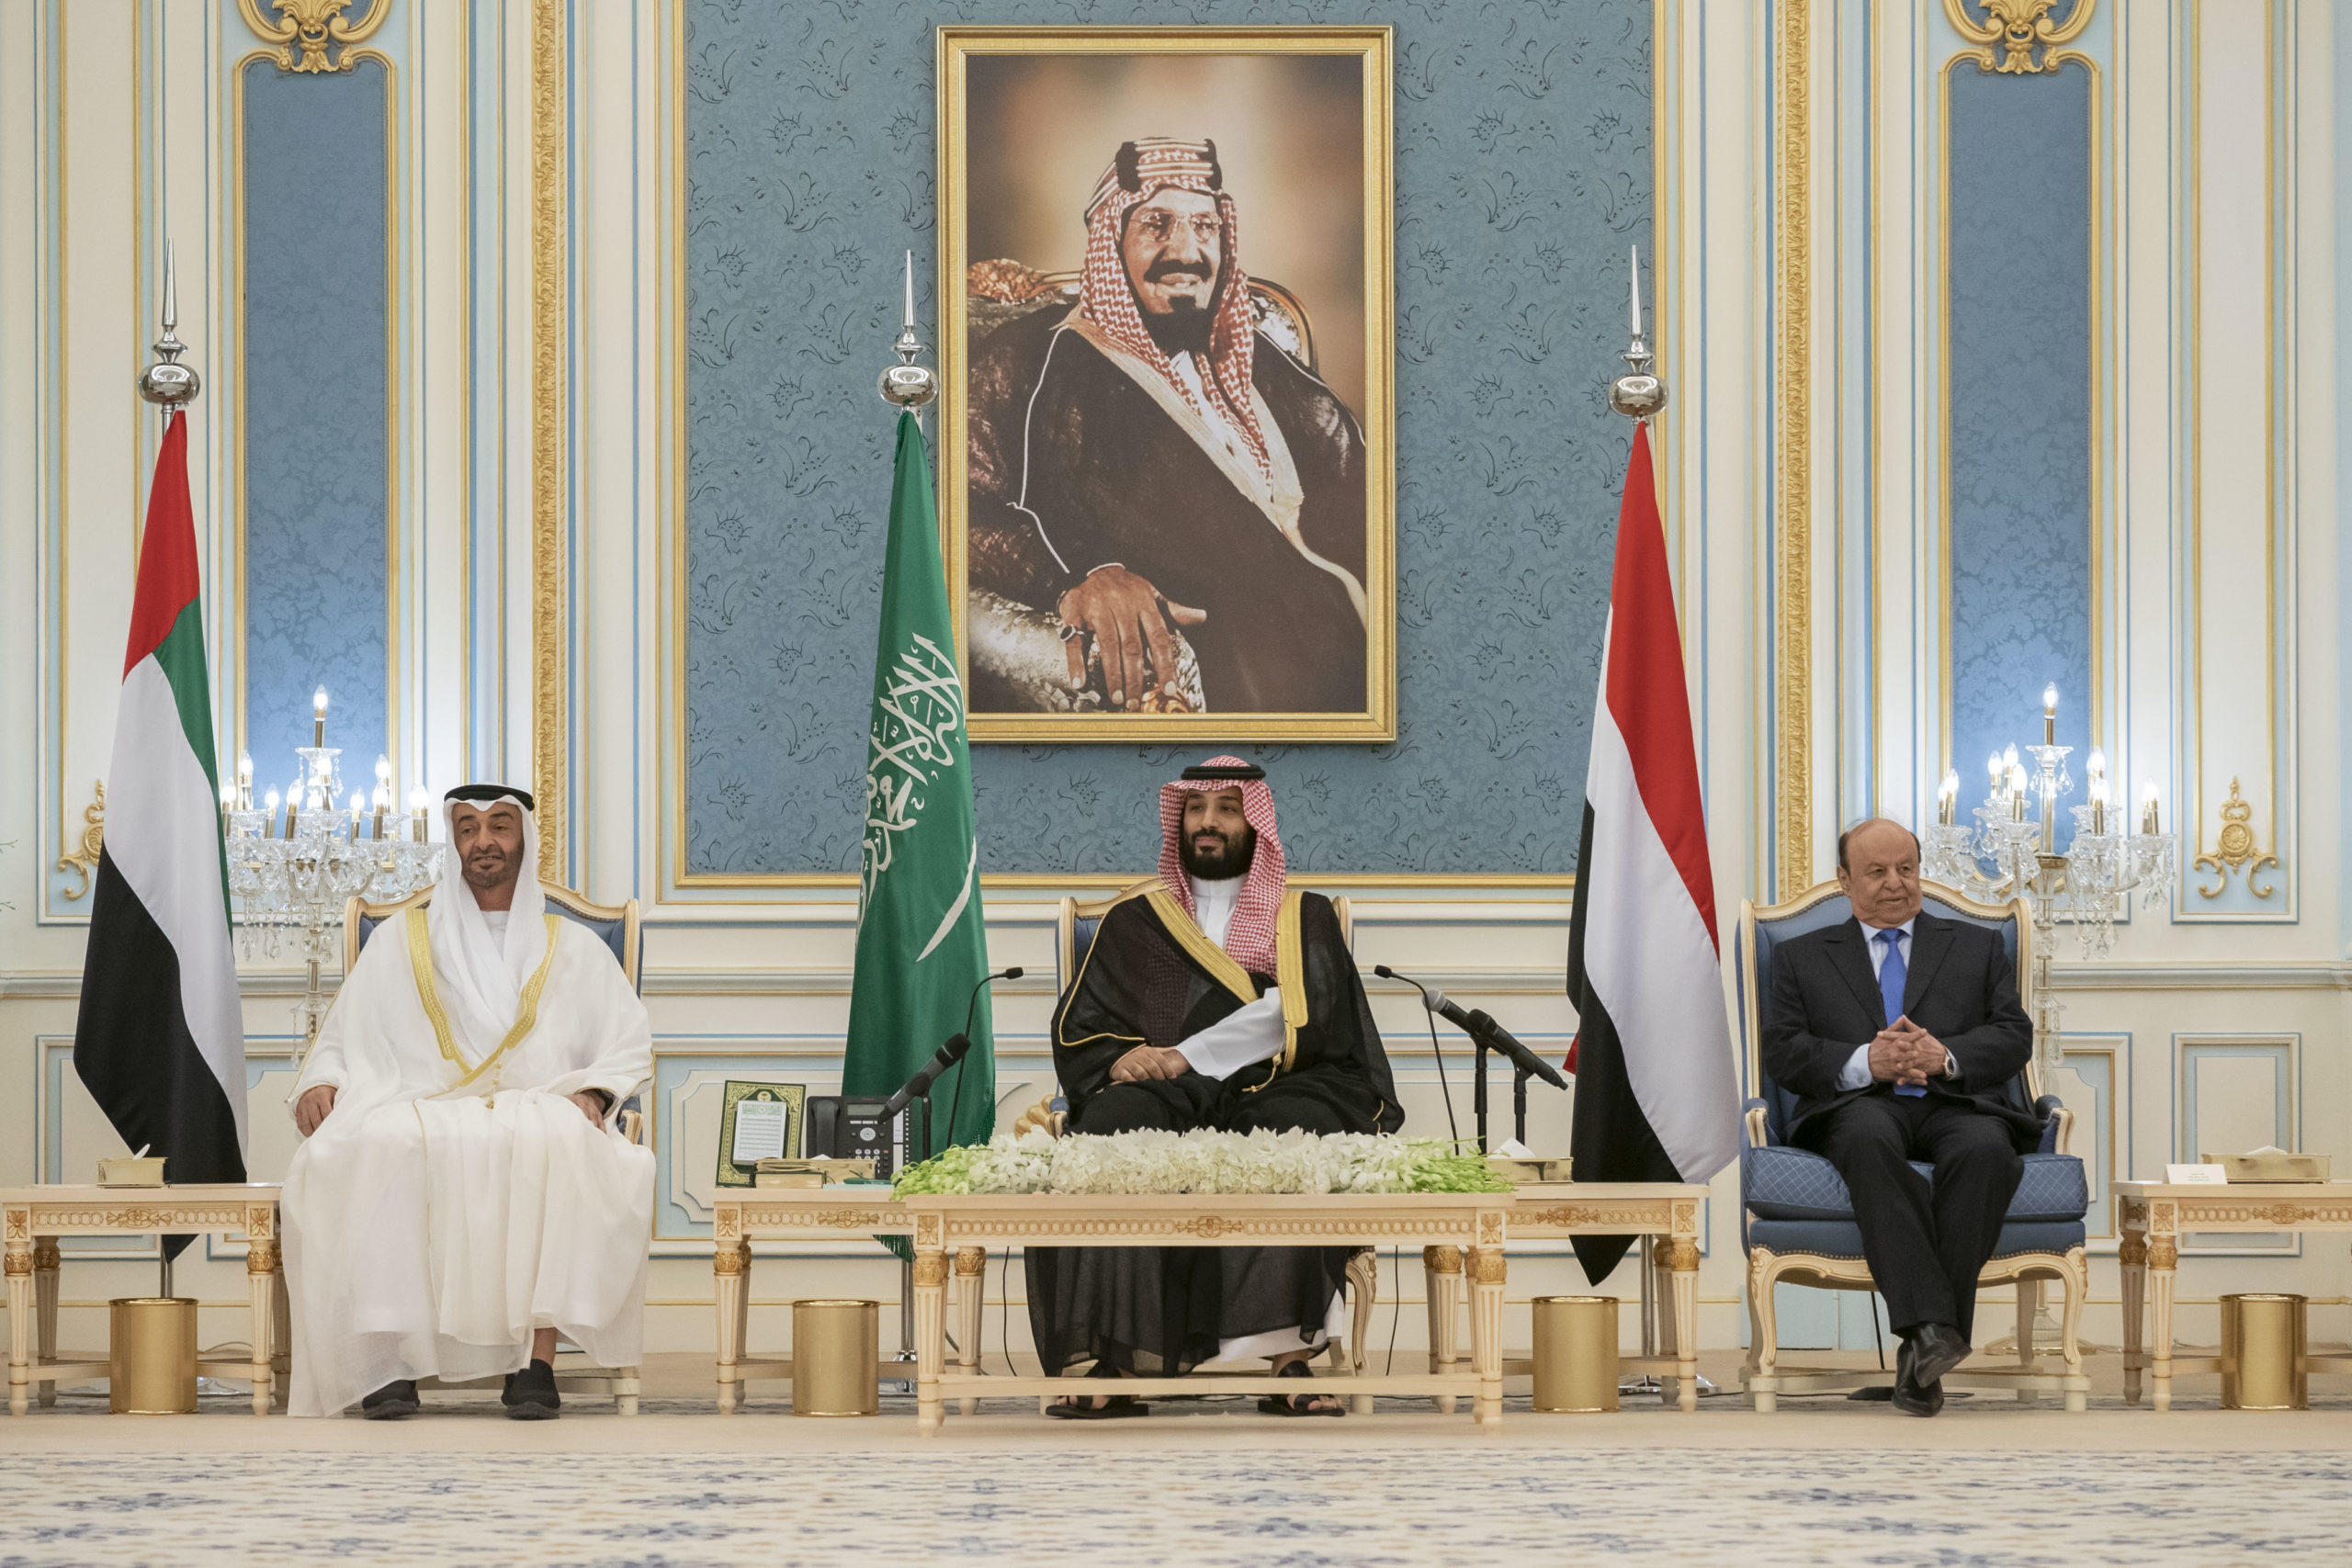 Crown Prince of Abu Dhabi Sheikh Mohamed bin Zayed al-Nahyan (left), Saudi Crown Prince Mohammed bin Salman and Yemen's President Abedrabbo Mansour Hadi (right) attend a peace-signing ceremony between the Saudi-backed Yemeni government and the southern separatists in Riyadh, Saudi Arabia in November 2019. Photo: Hamad al-Kaabi/AFP.